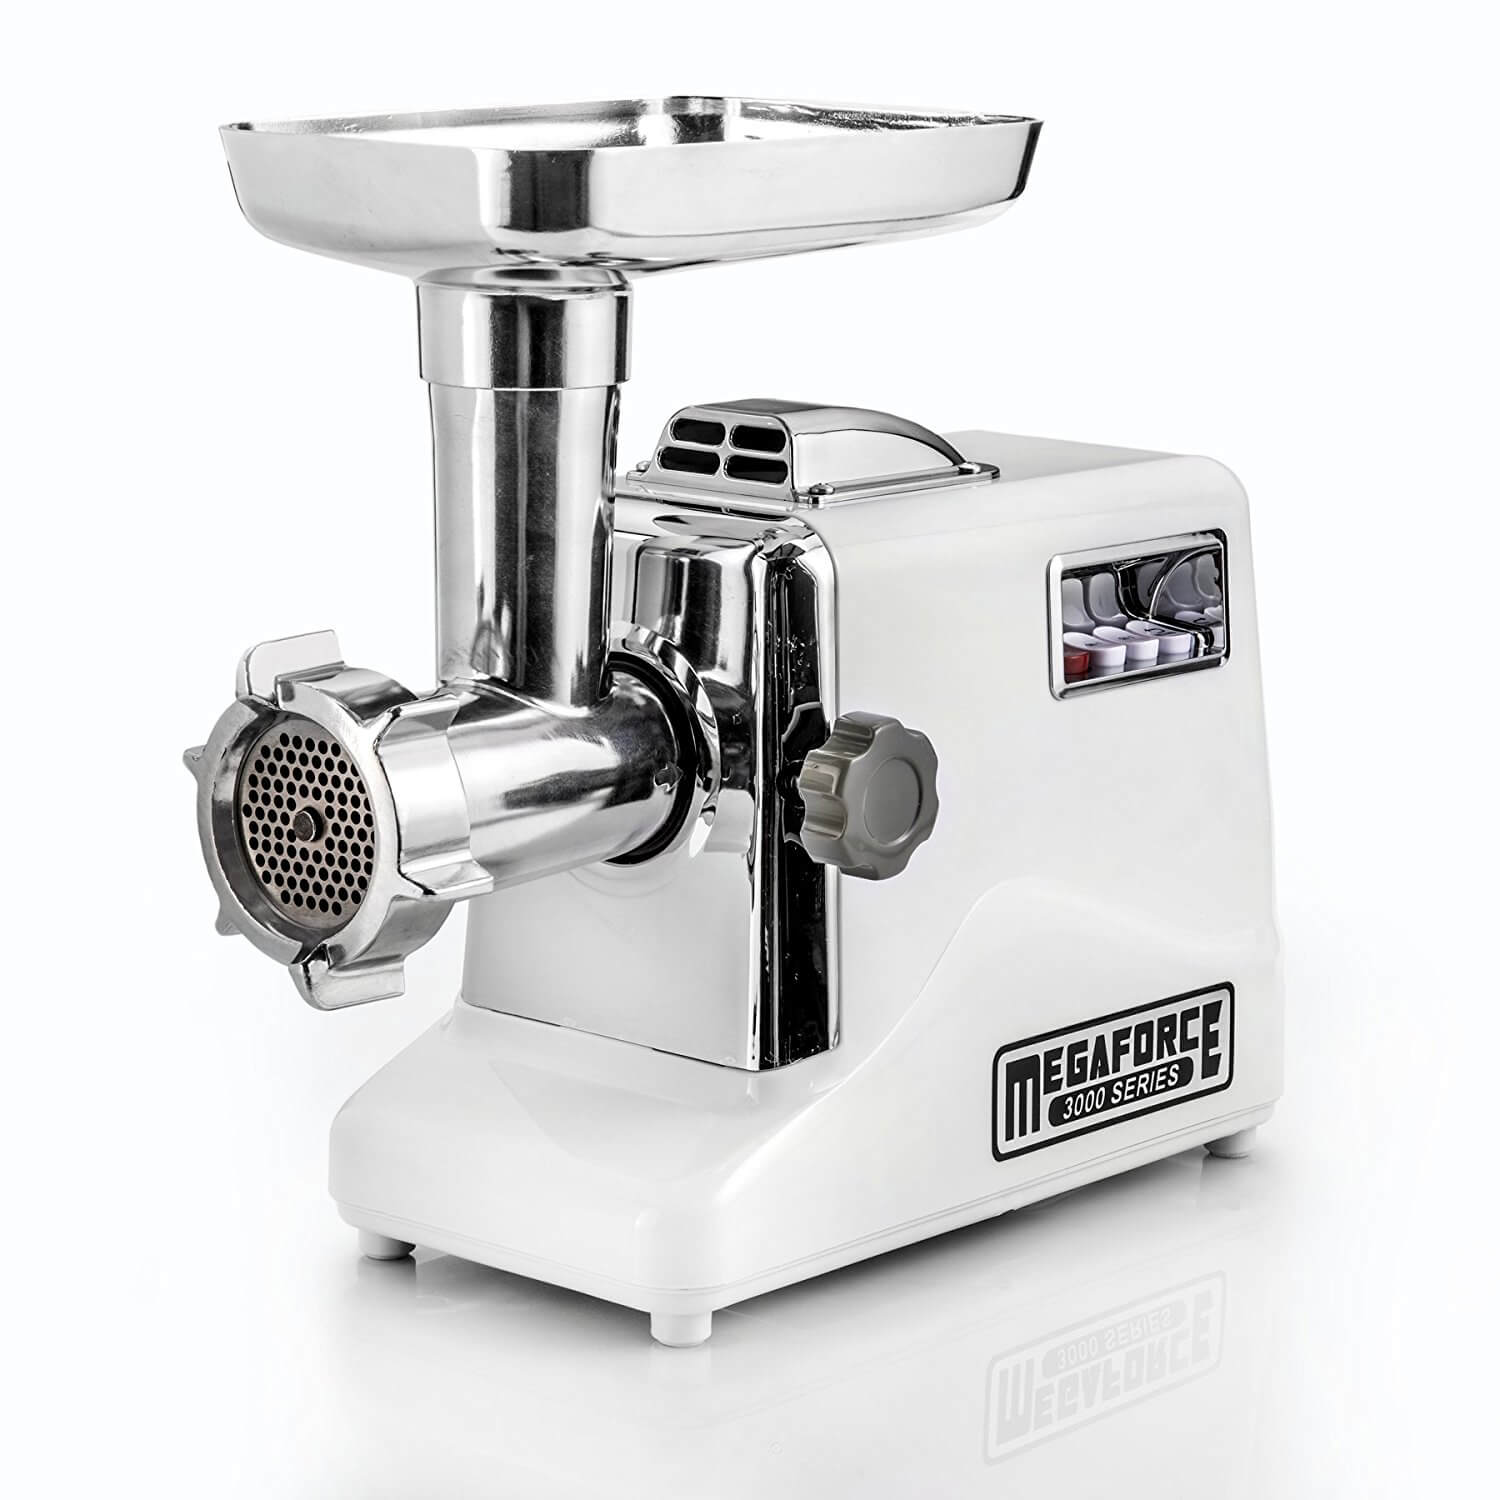 SIX International: STX-3000-MF Meat Grinder